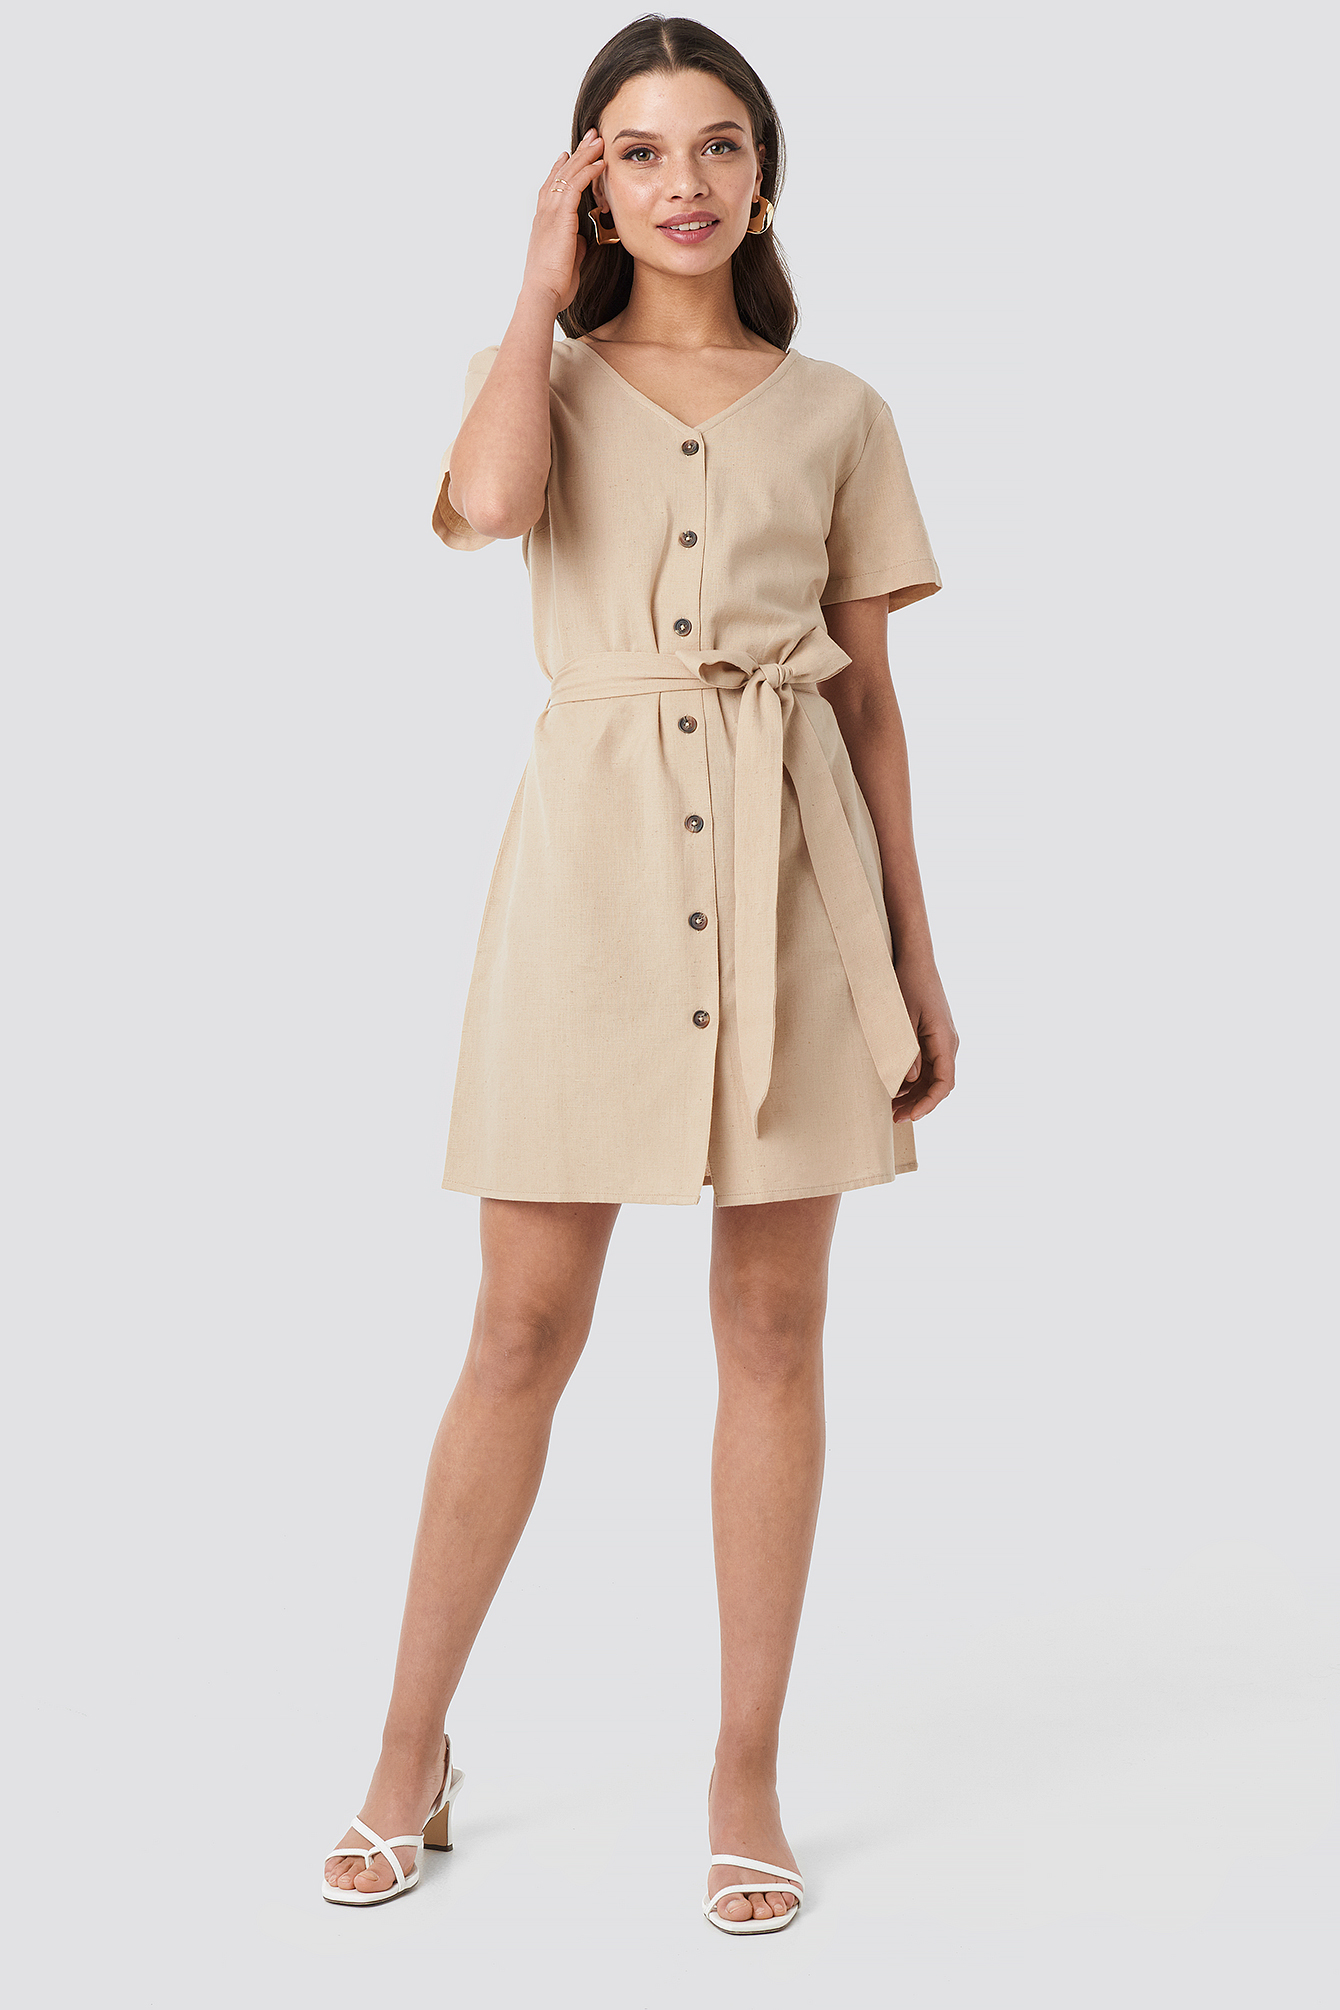 Linen Look Buttoned Dress NA-KD.COM